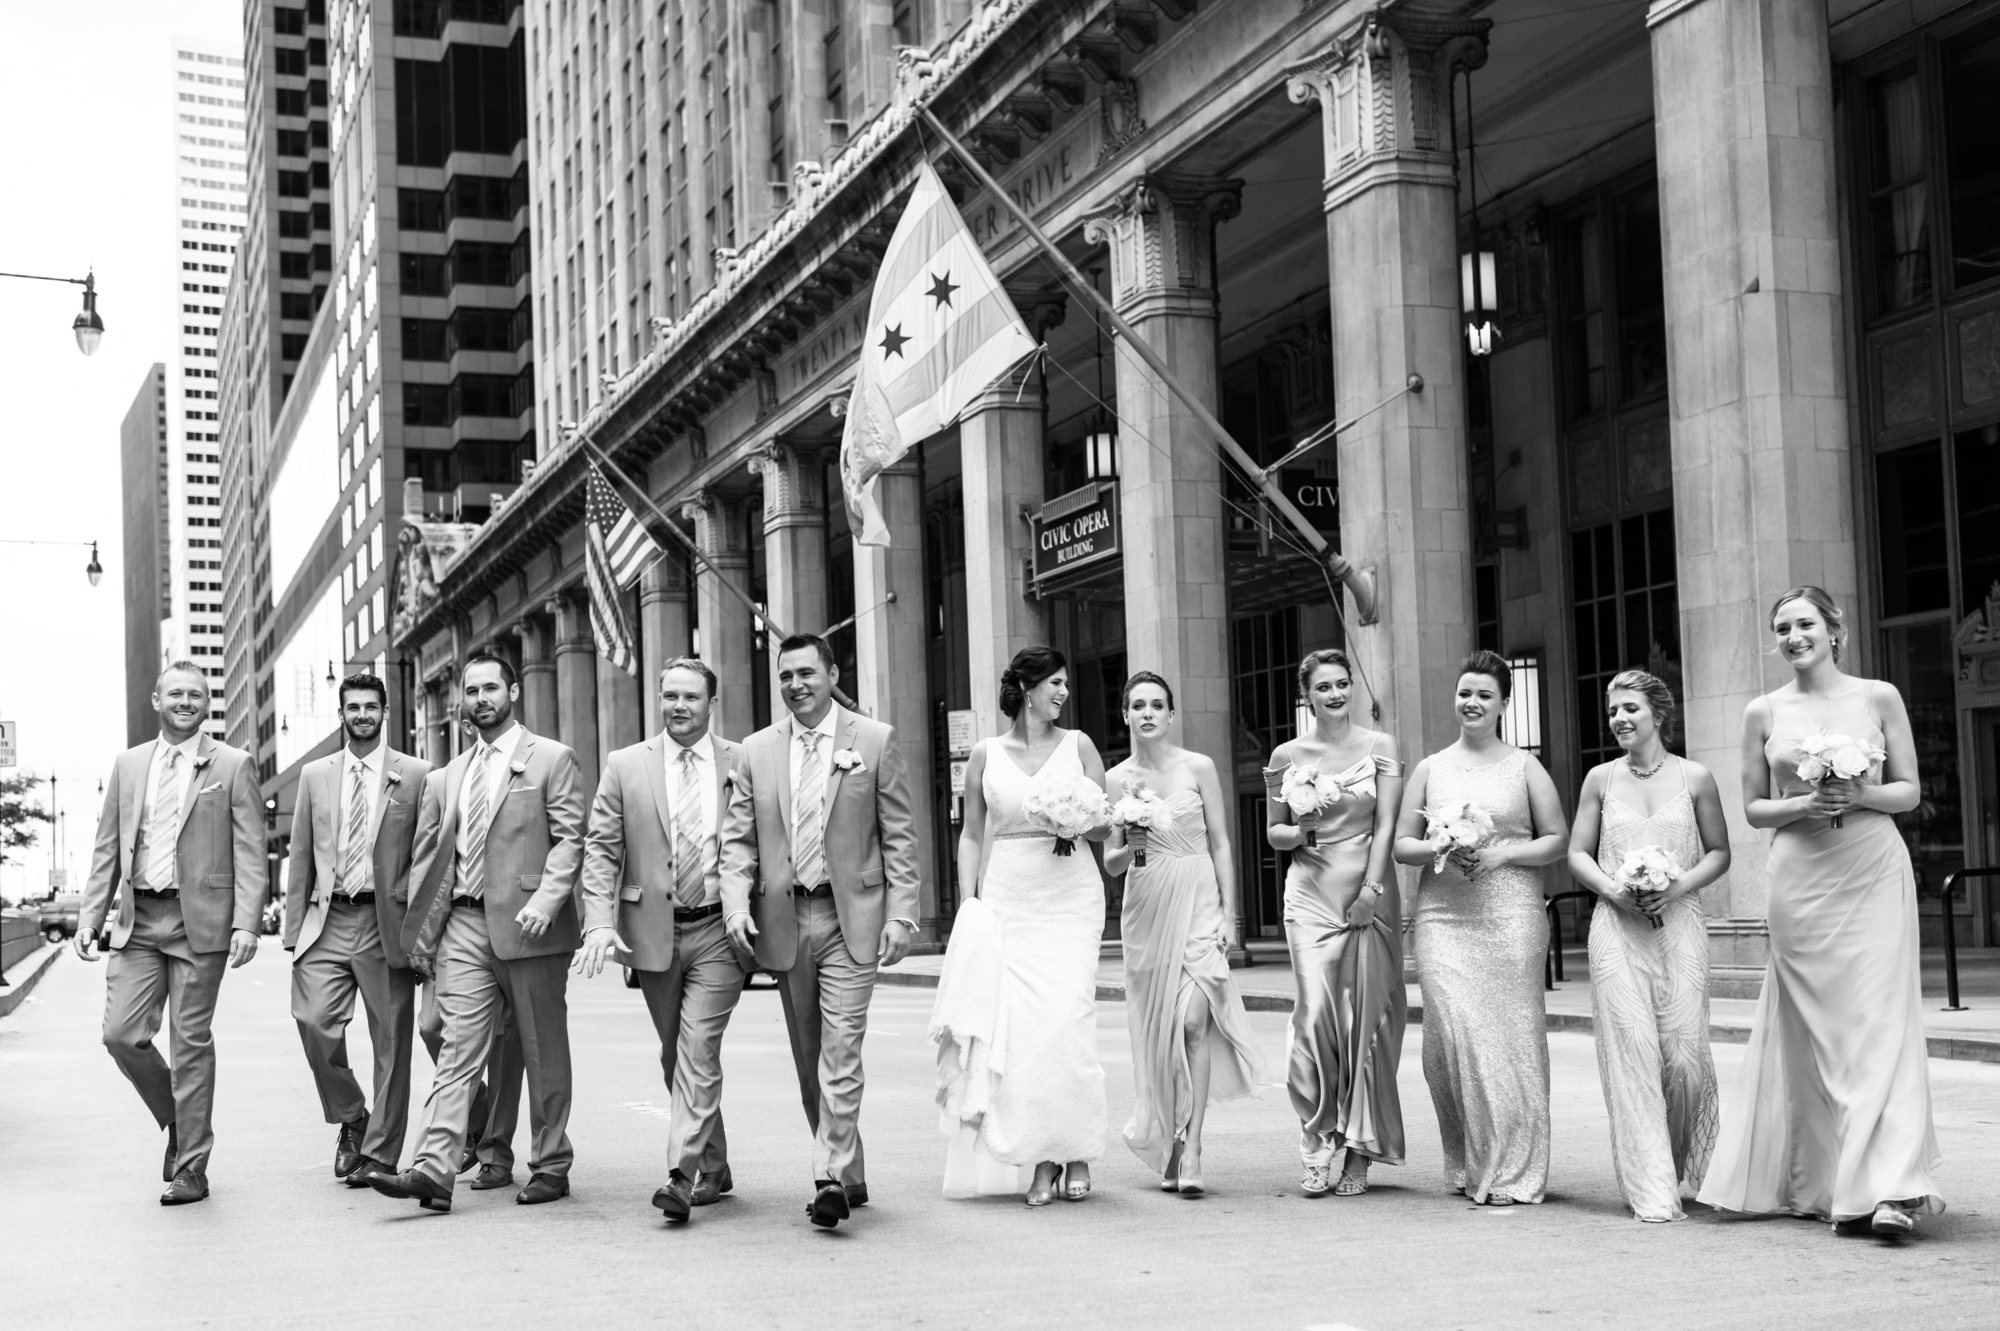 Wedding party portrait at Civic Opera Building in Chicago